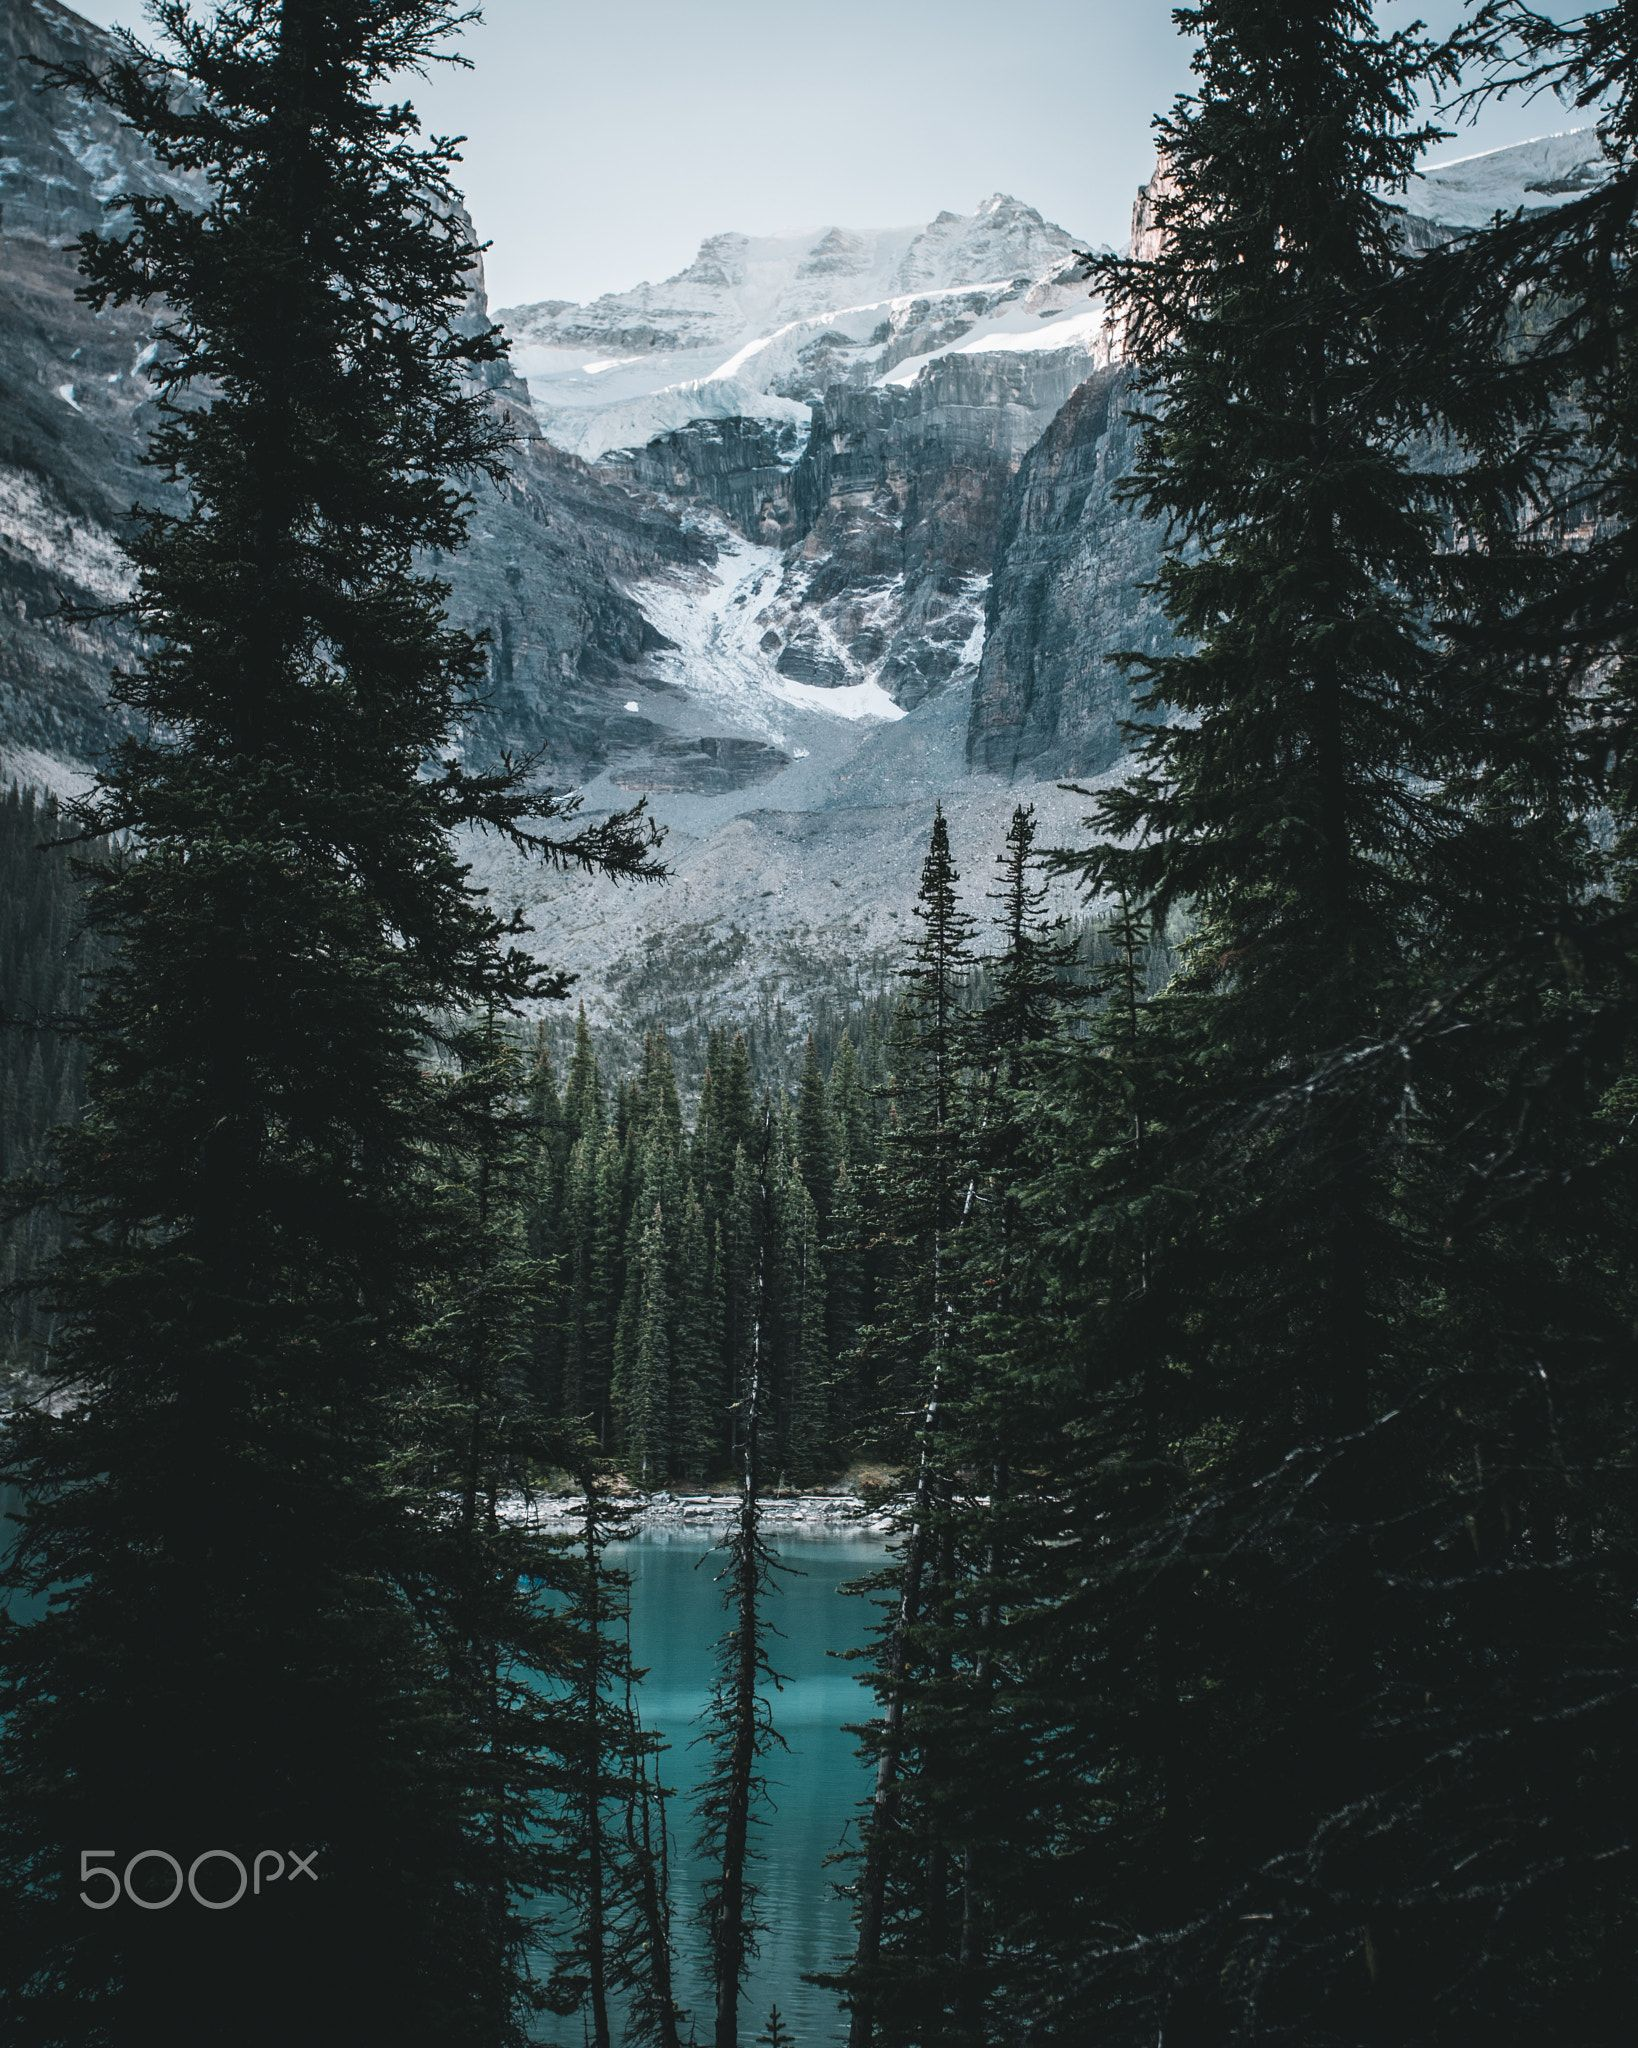 Amazing Landscape Between Rocky Mountains And Lake And Forest Landscapes Mountain Landscape Photography Fine Art Landscape Photography Landscape Photography